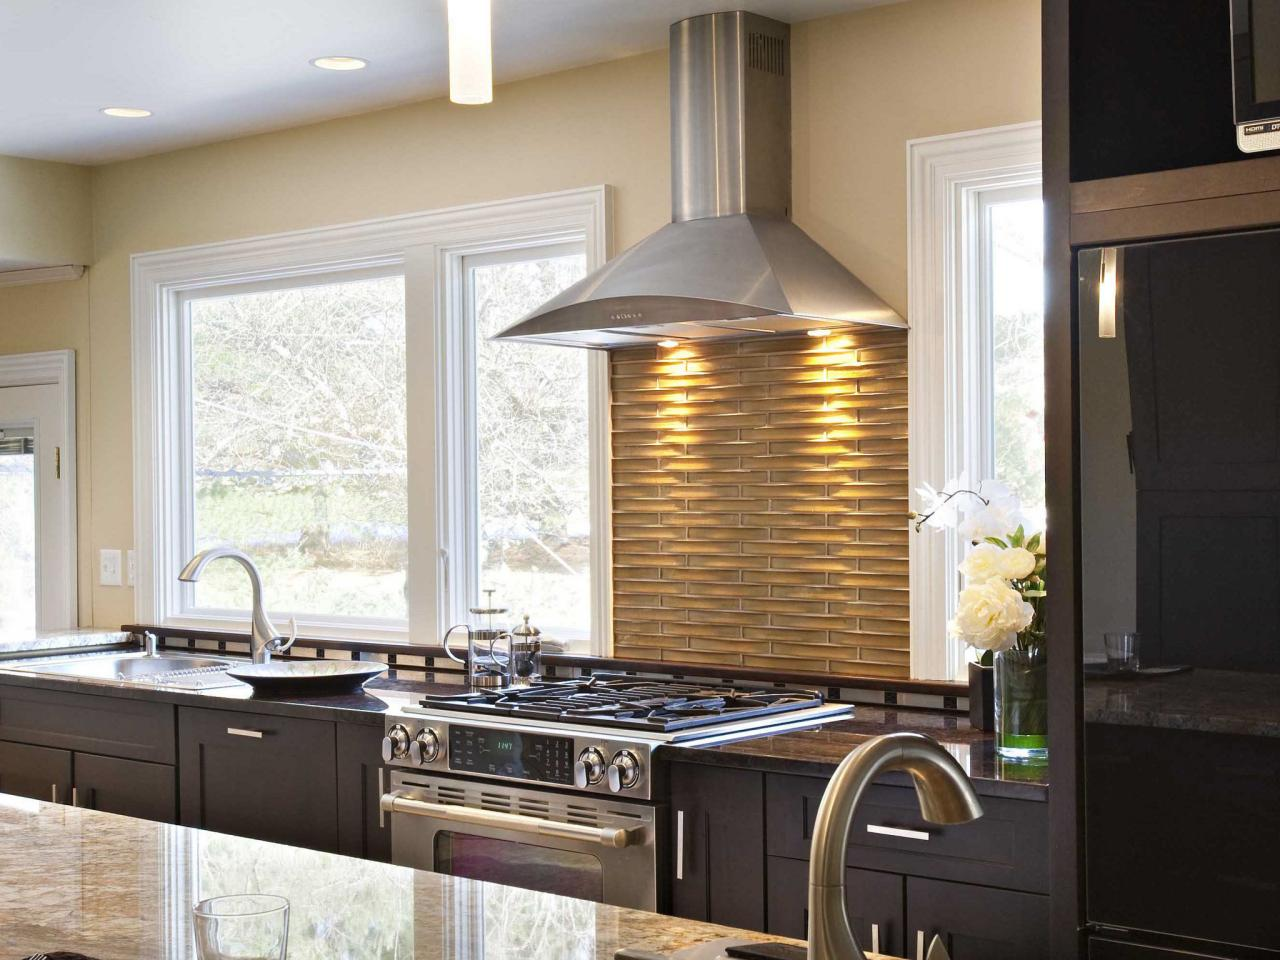 kitchen stove backsplash ideas